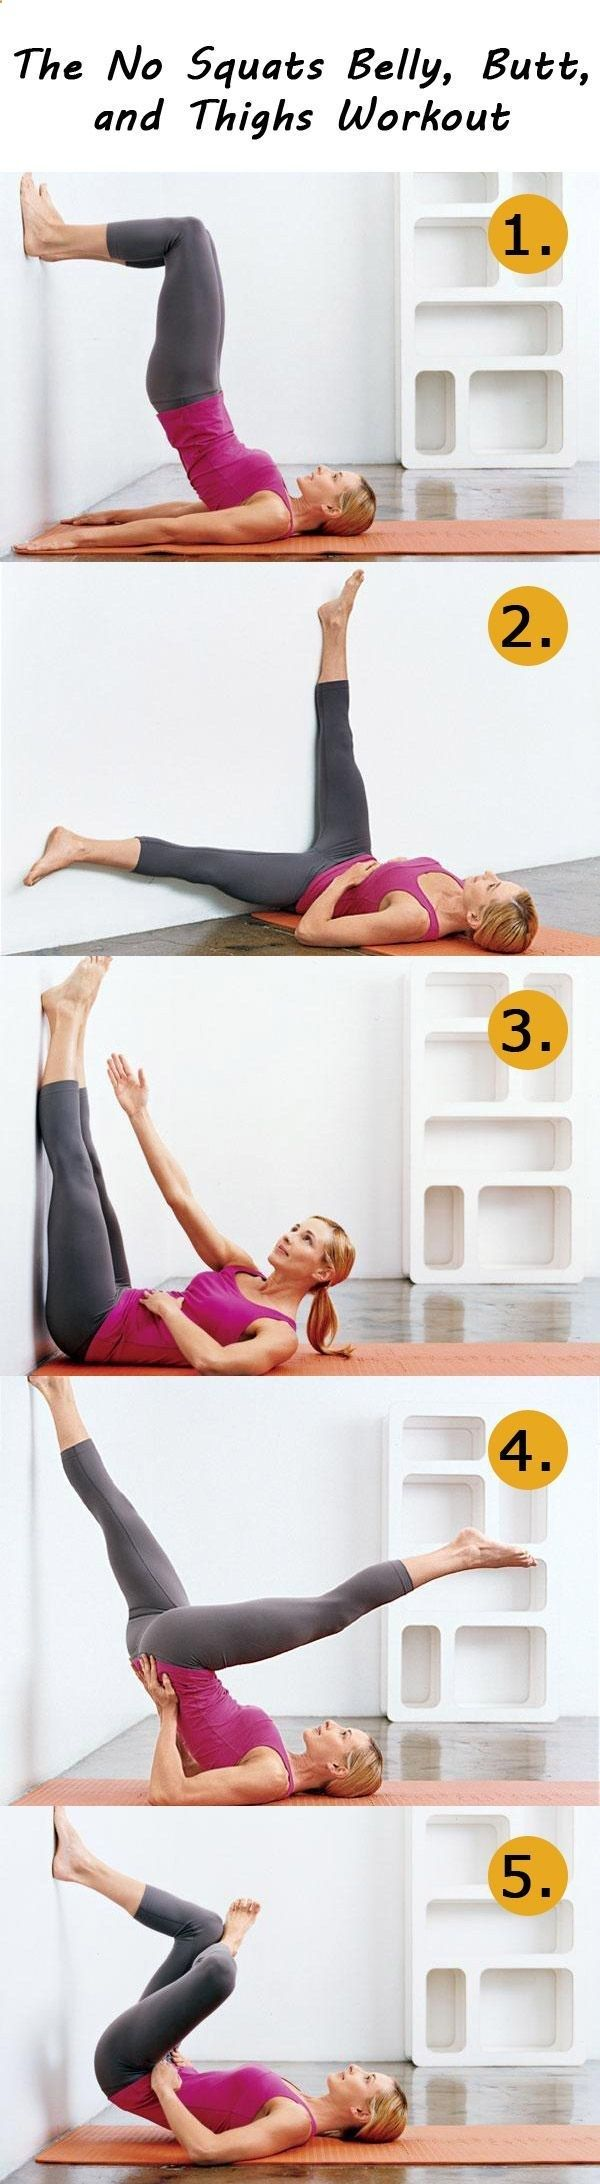 The No Squats Belly, Butt, and Thighs Workout - possibly something easy I could do since even sit ups hurt my head | Do It Darling